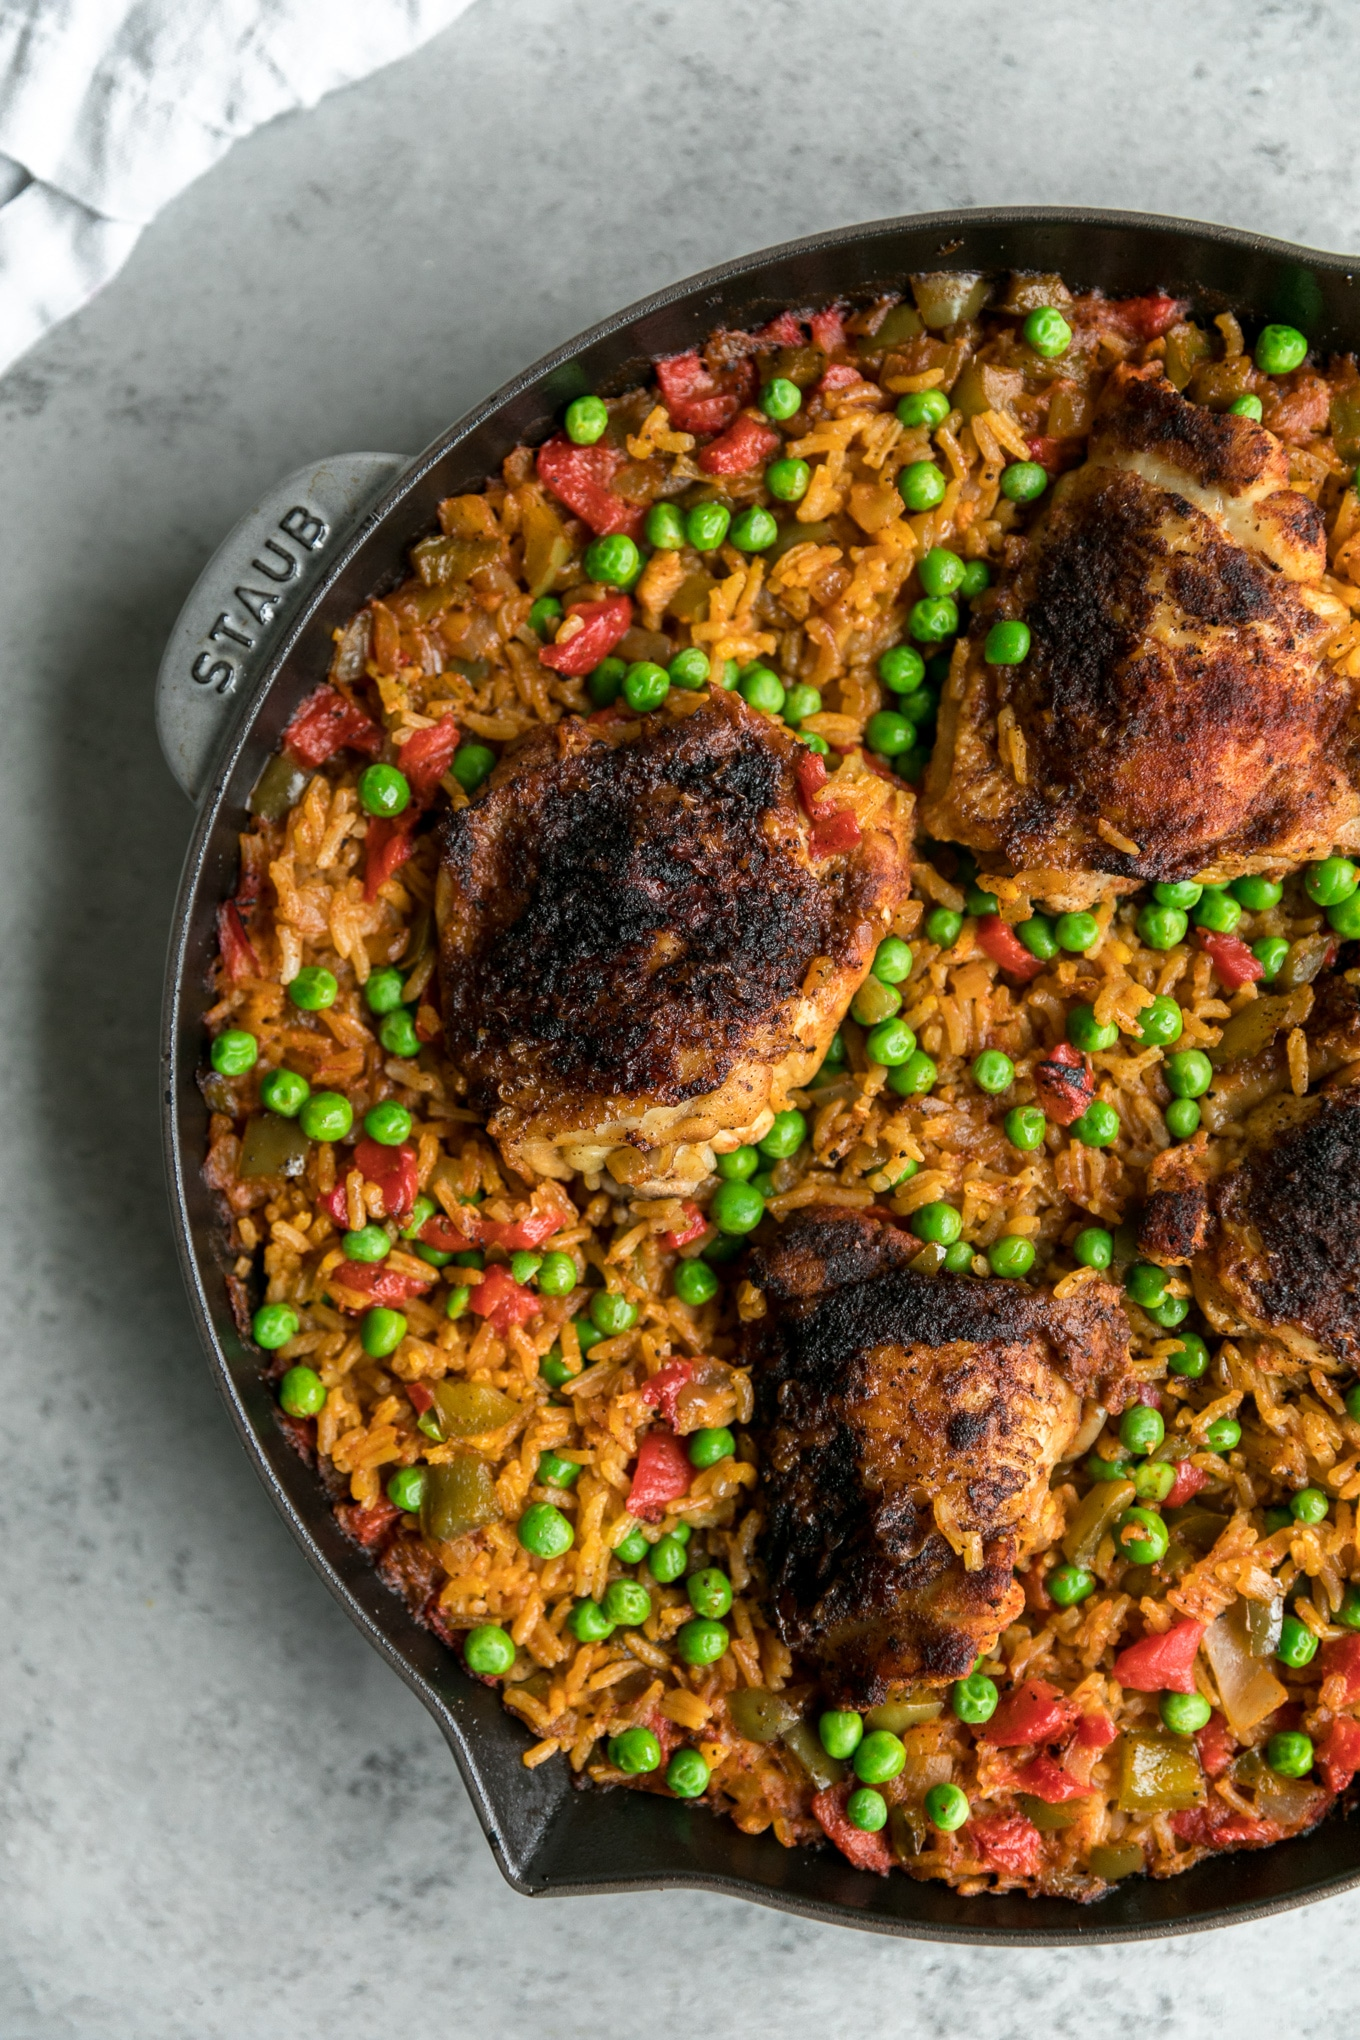 Overhead shot of a cast iron skillet filled with Spanish chicken and rice with peas